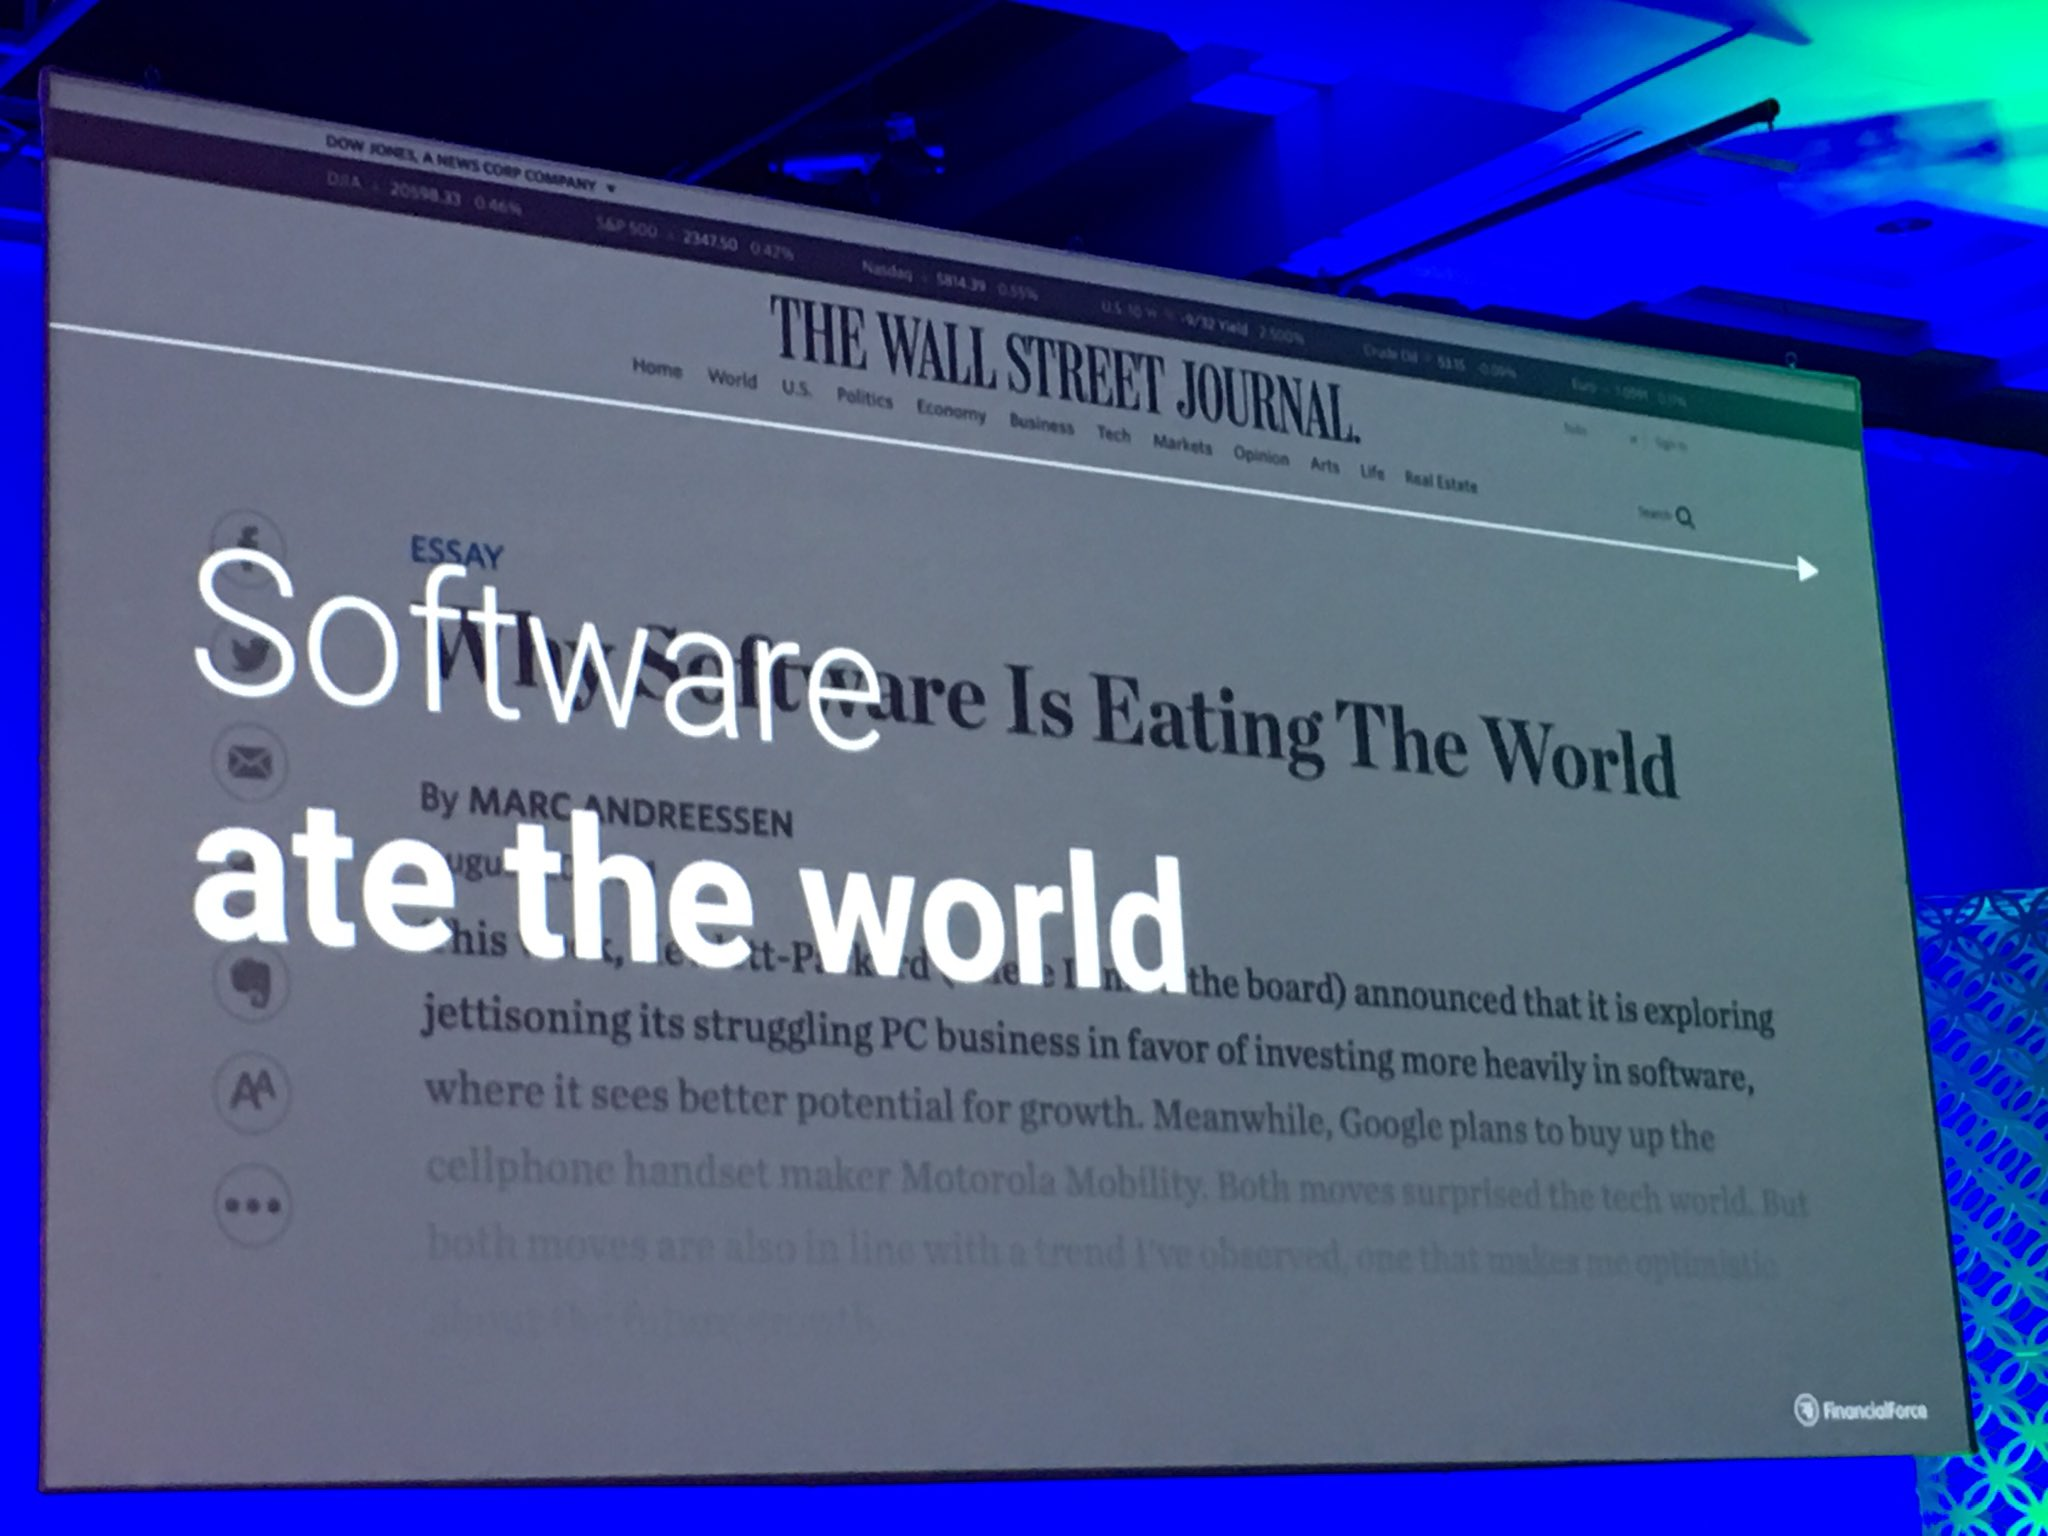 """MyPOV: @TodNielsen1 makes a fun point. @pmarca needs a follow up """"How Software Ate the World"""" #svlife #FFComm17 https://t.co/wjZZRkisYr"""